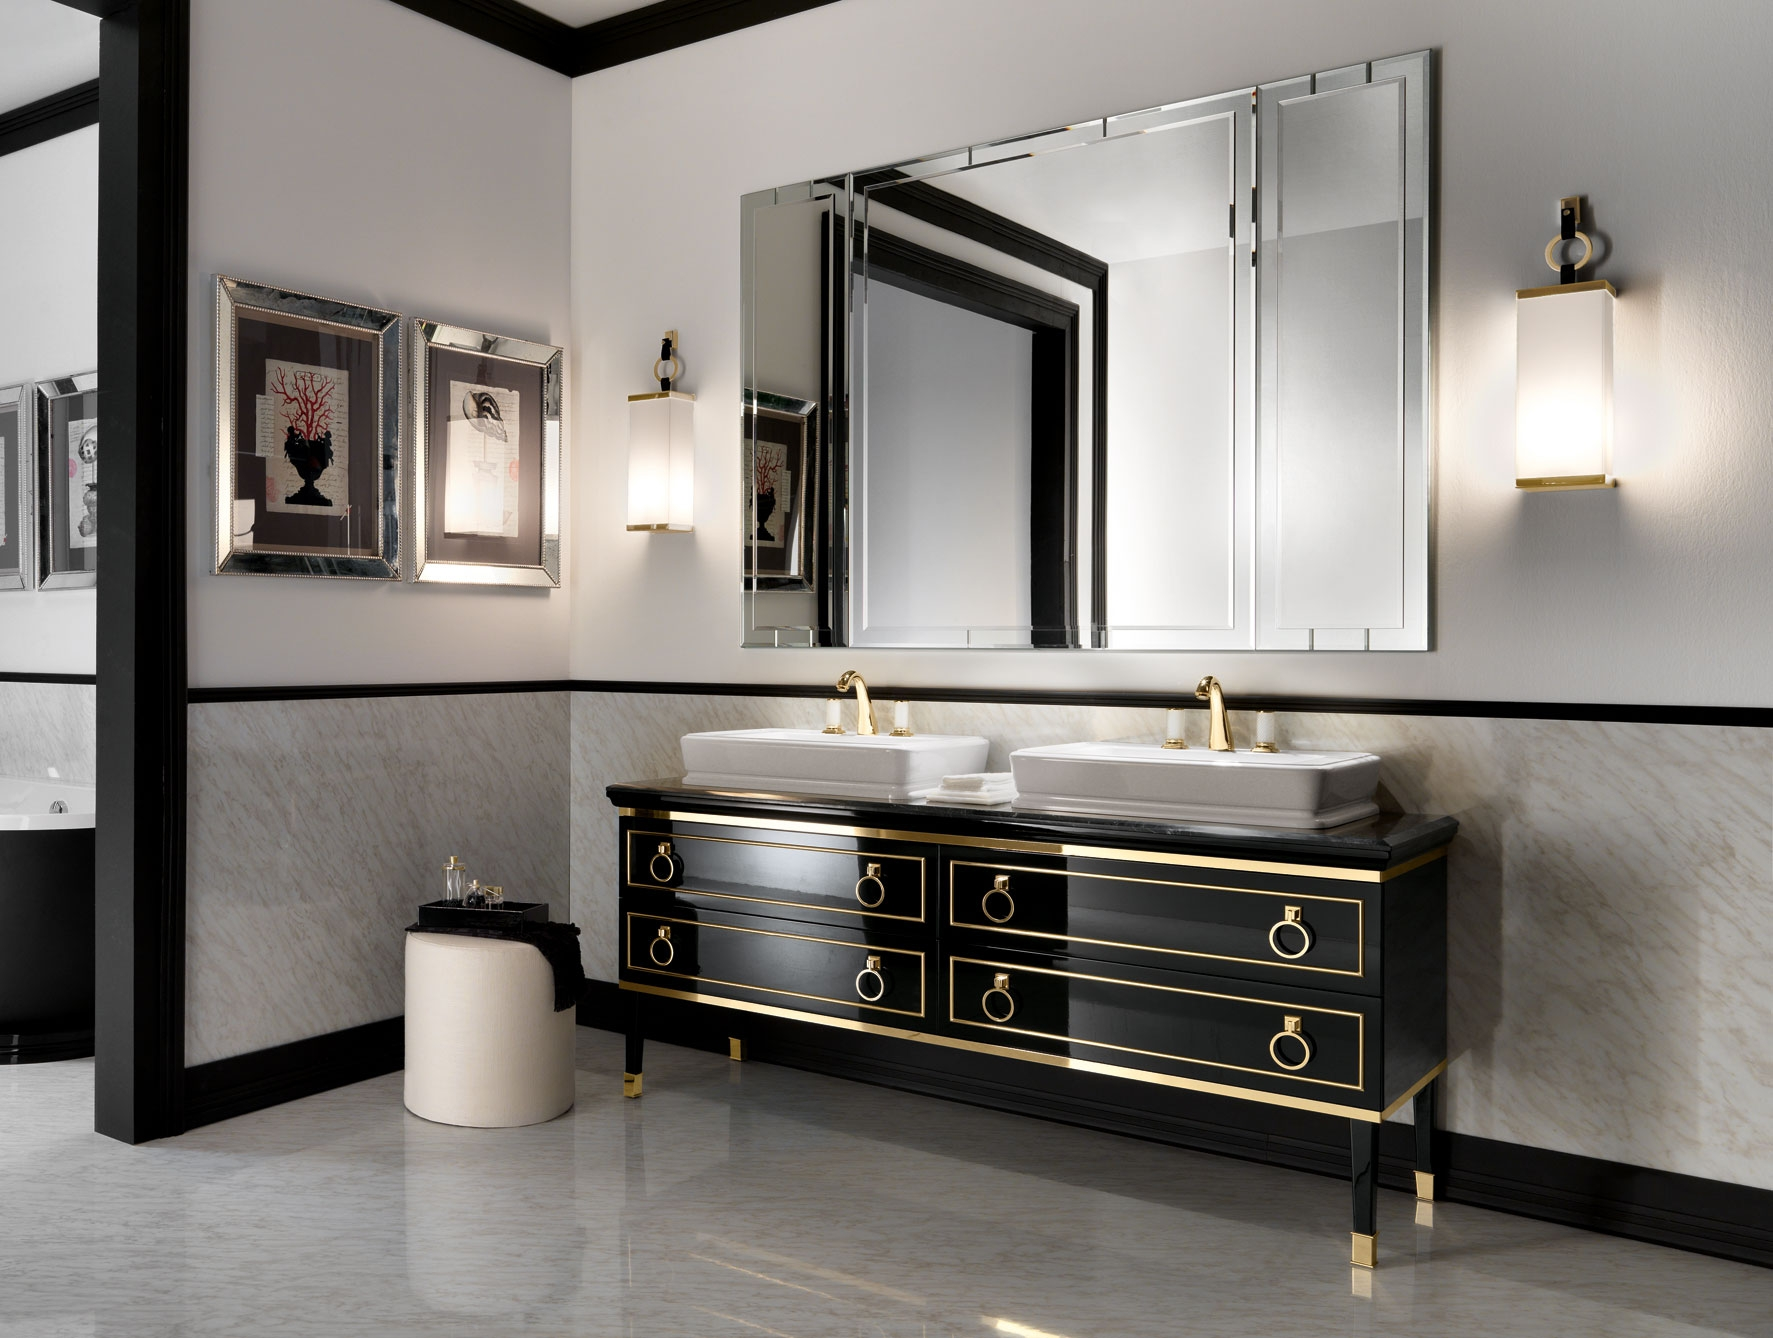 Art Deco Style Bathroom Vanity Creative Decoration With Mirrors Image